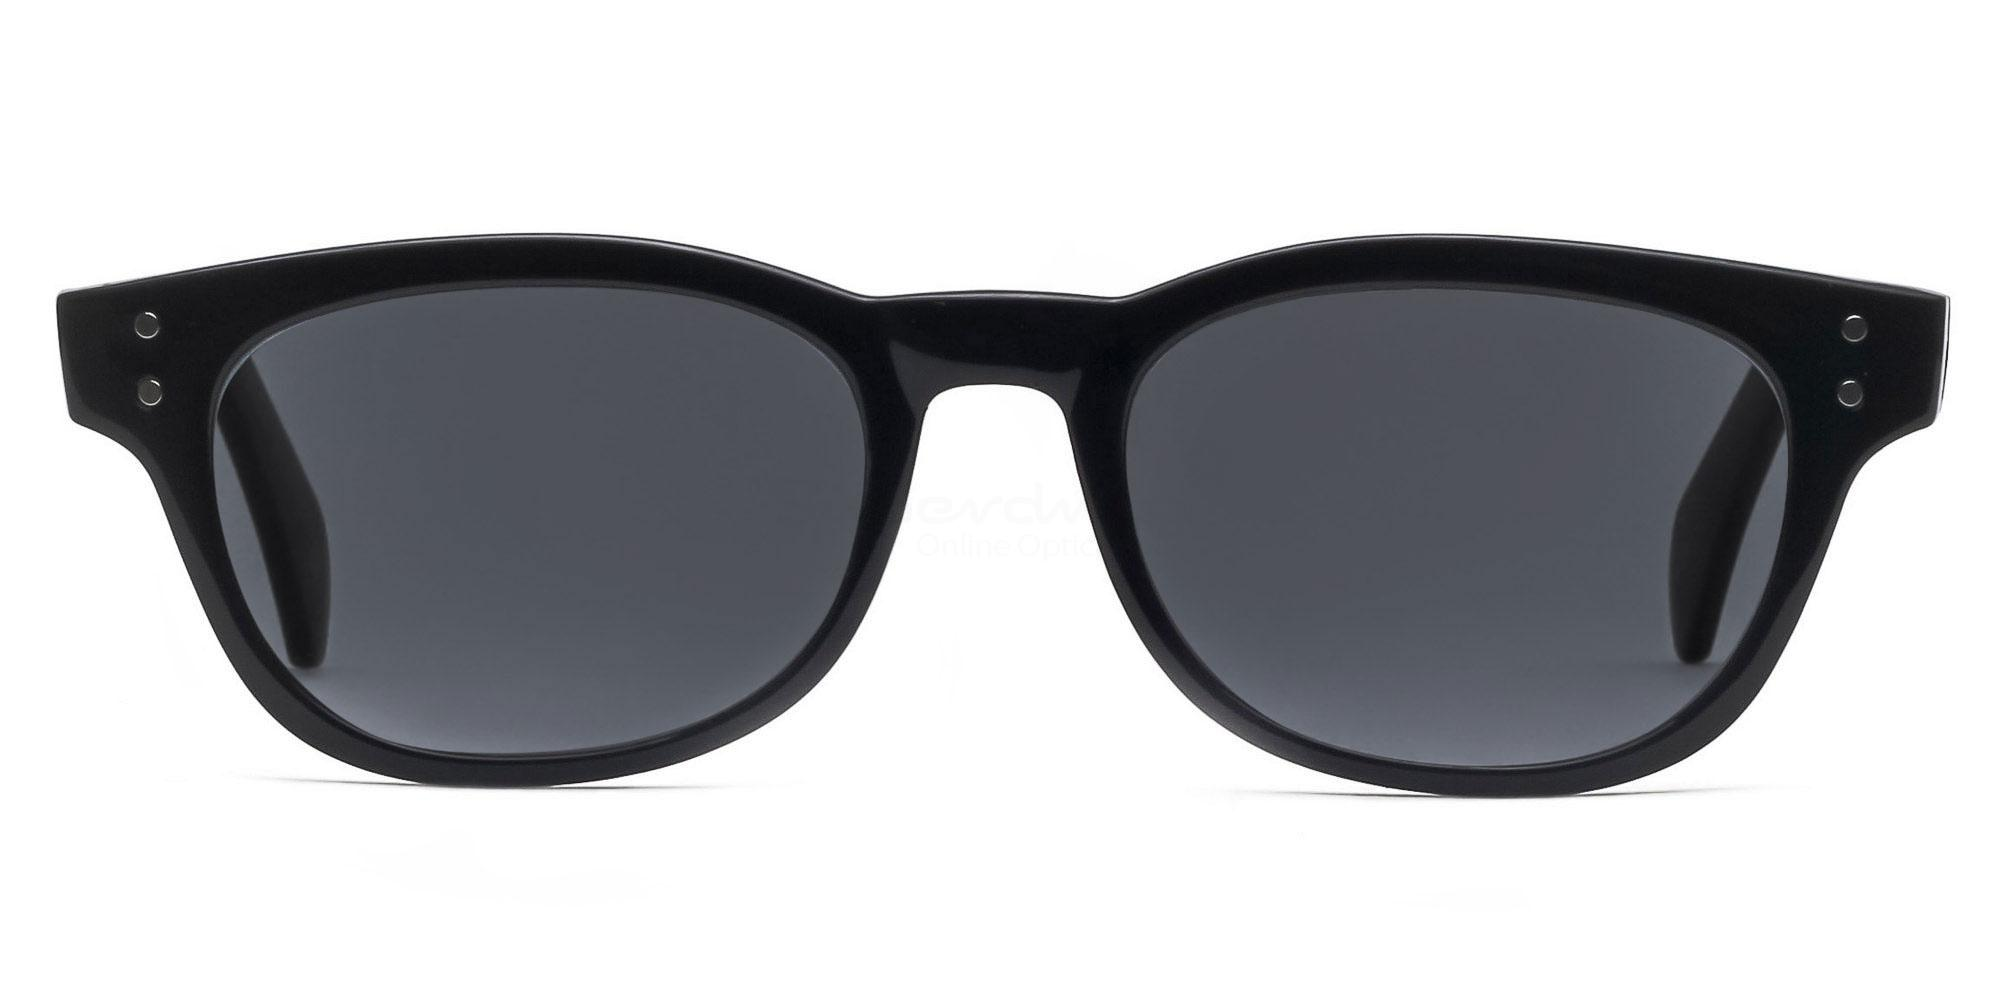 C01 Dark Grey P2249 Shiny Black (Sunglasses) Sunglasses, Indium